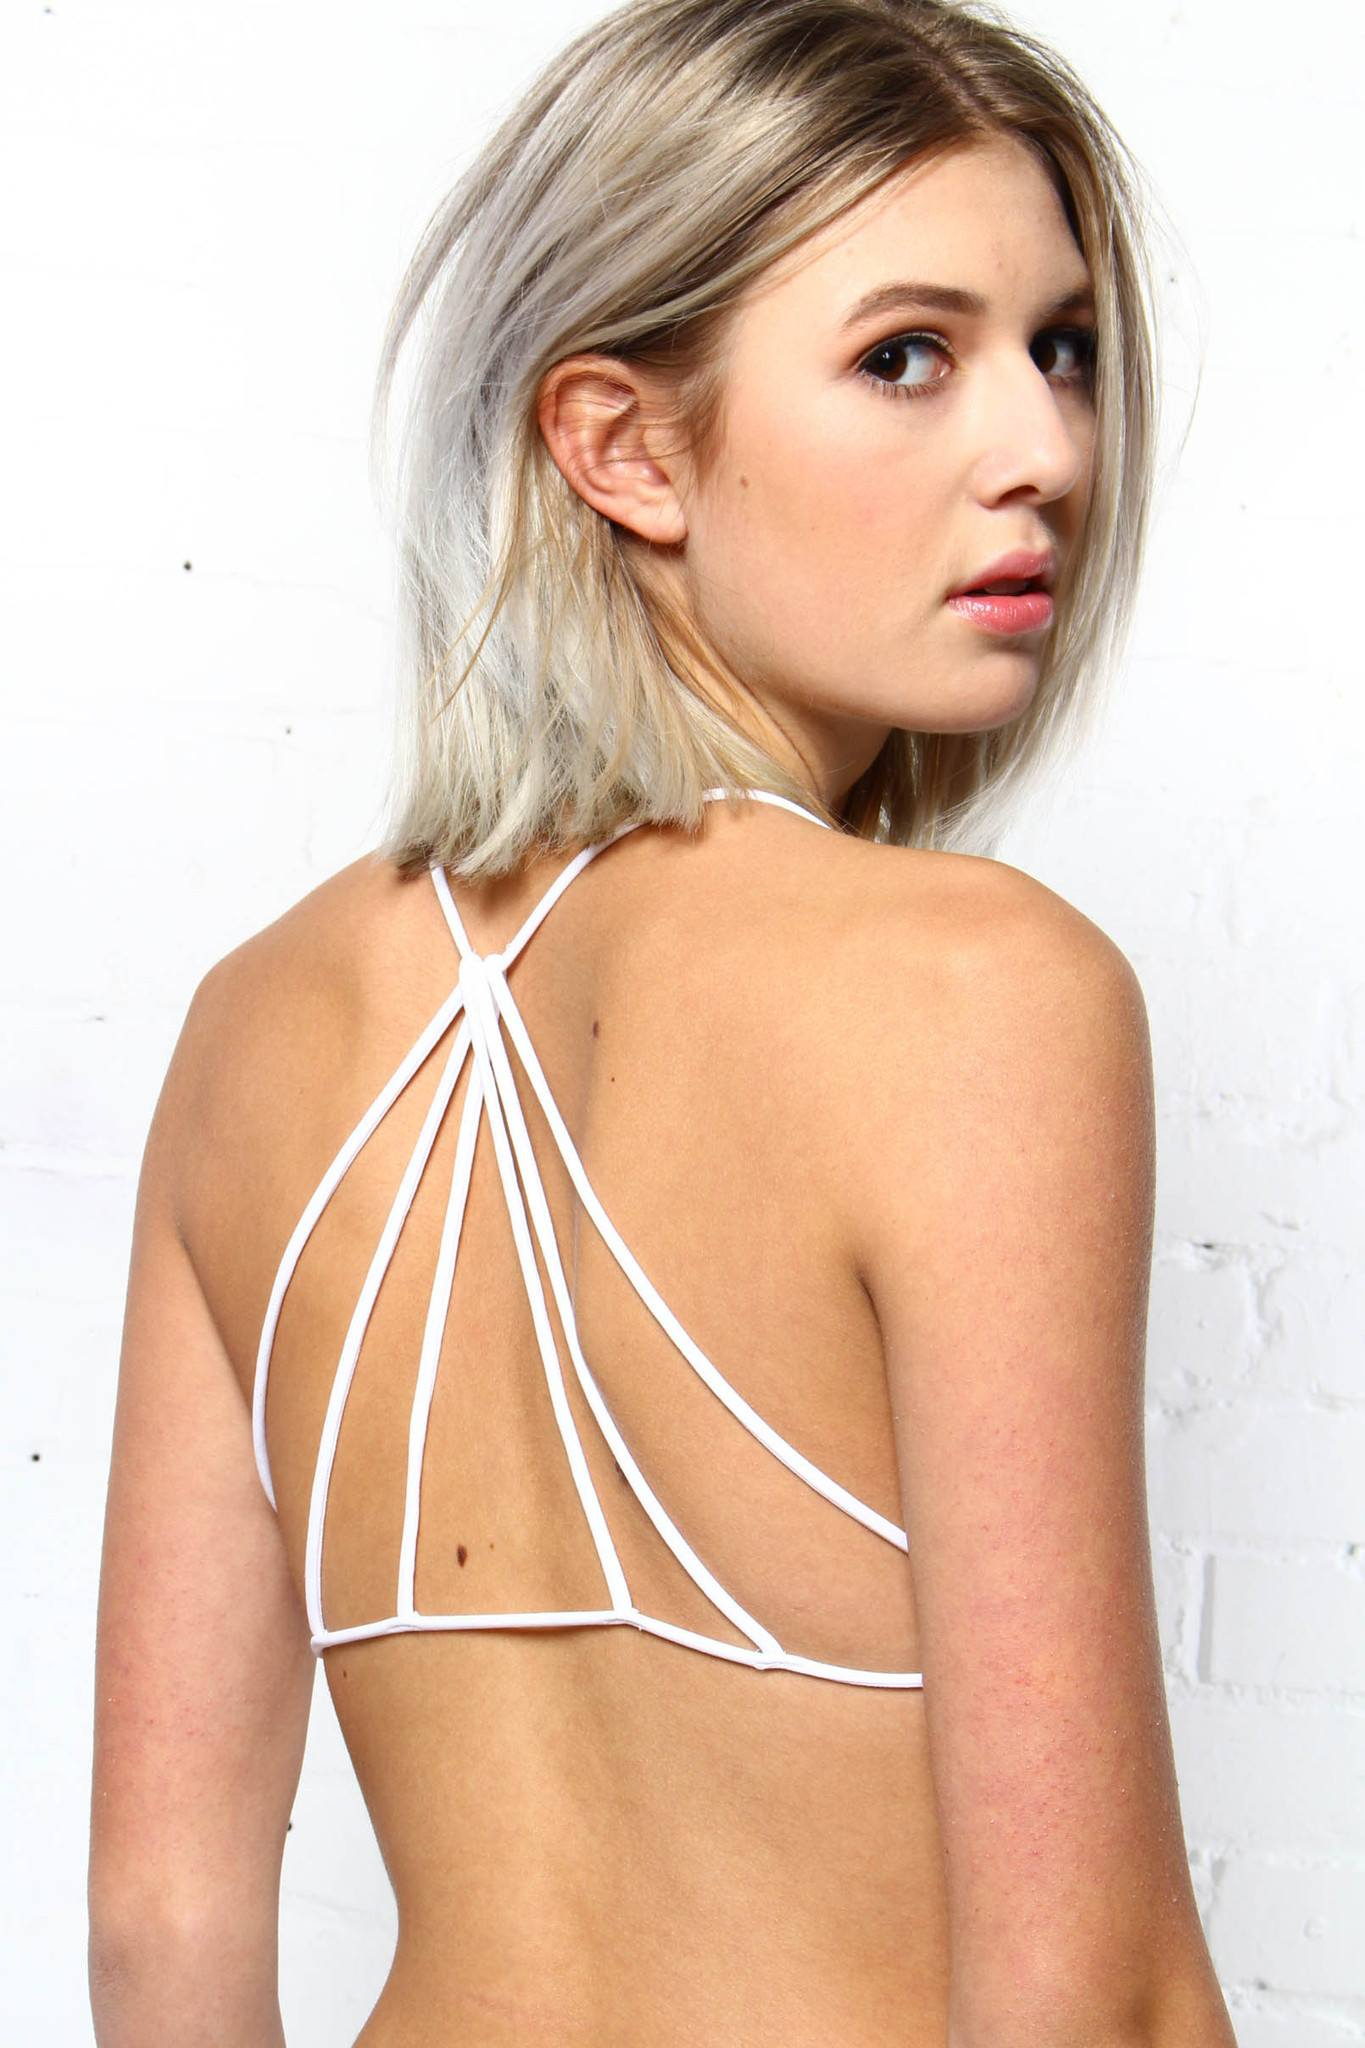 Free People Strappy Back Bra - White